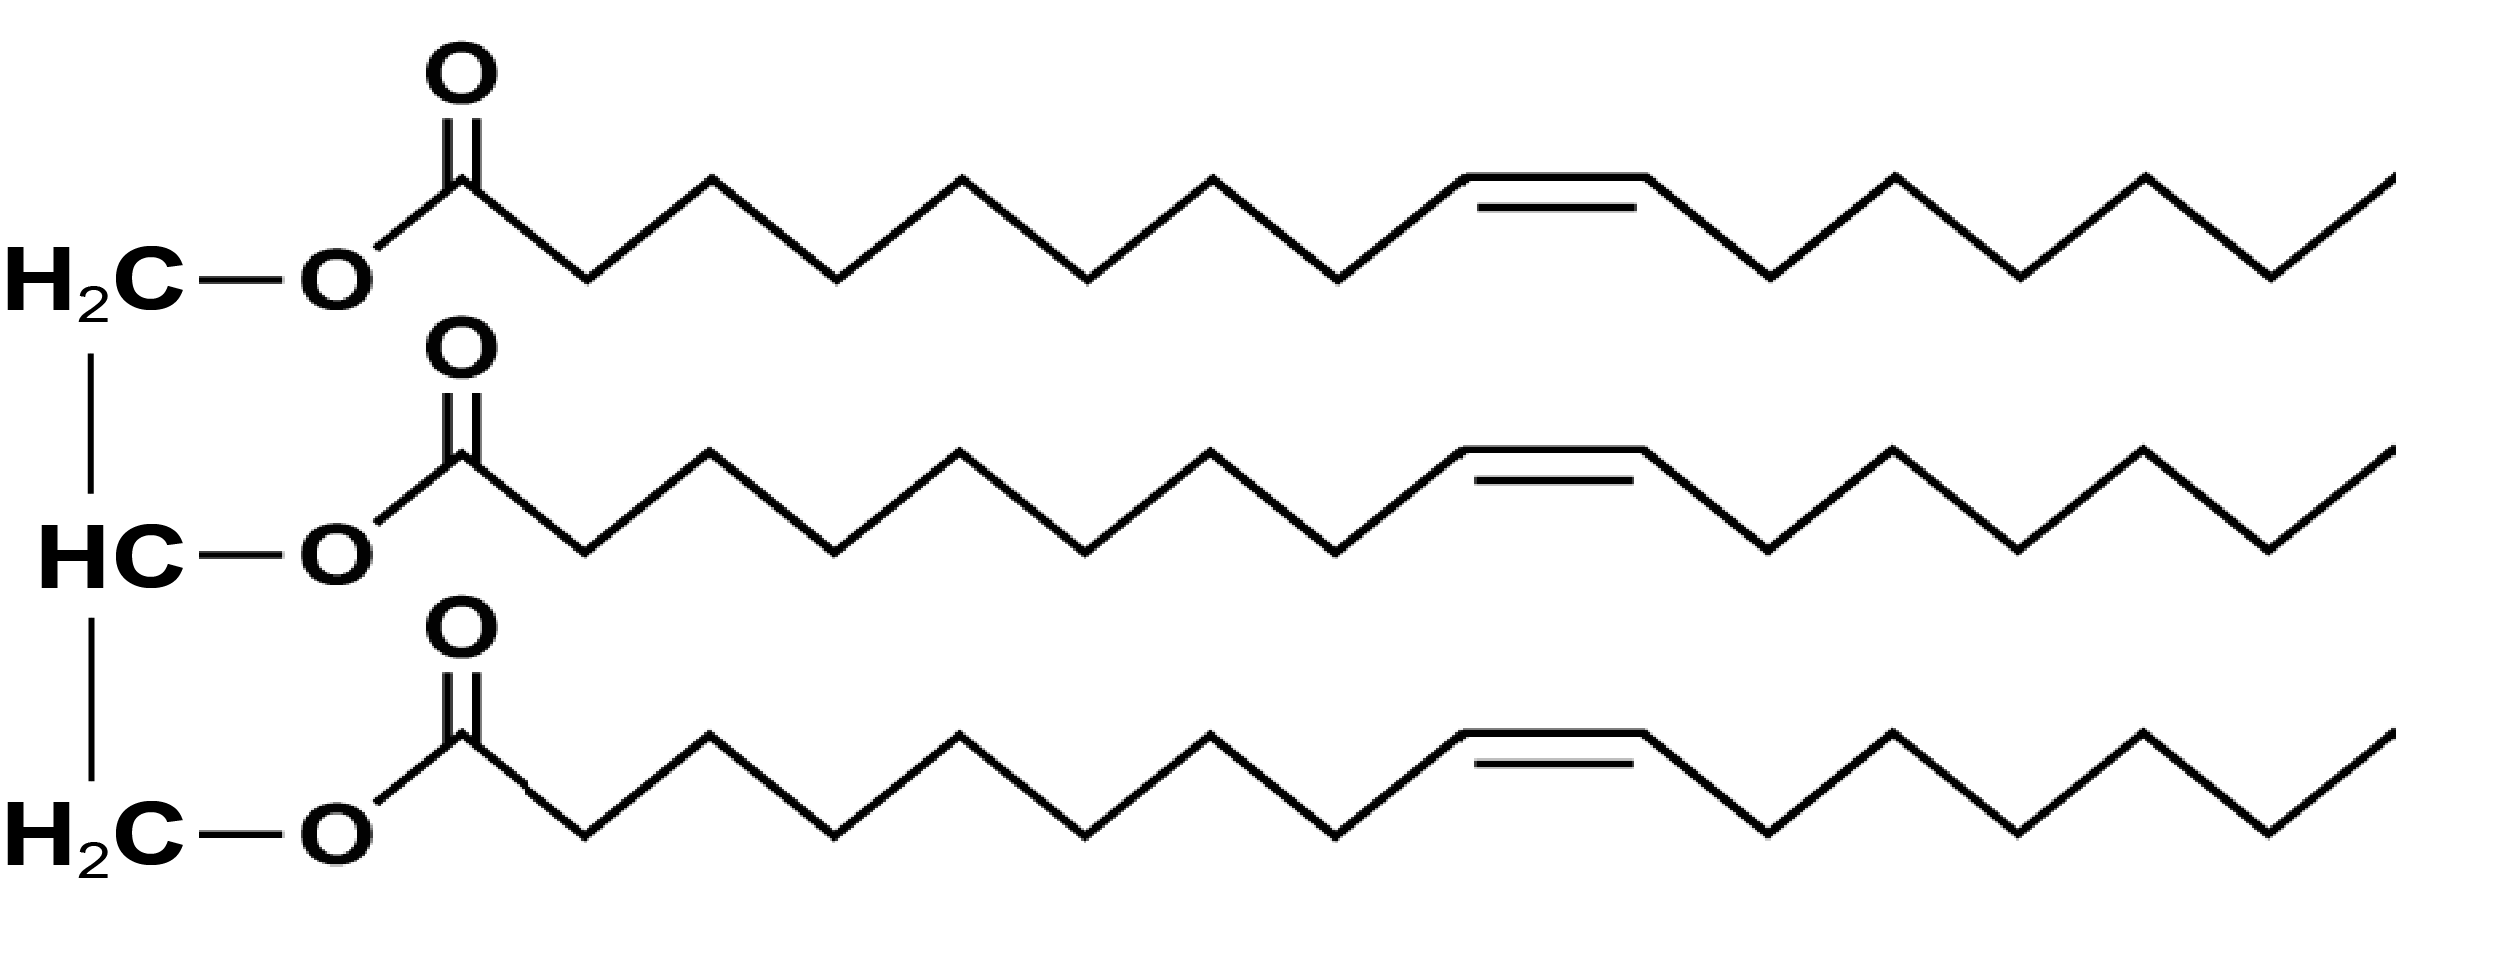 Chemical Structure of Palmitoleic Acid in Triglyceride (TG) Form